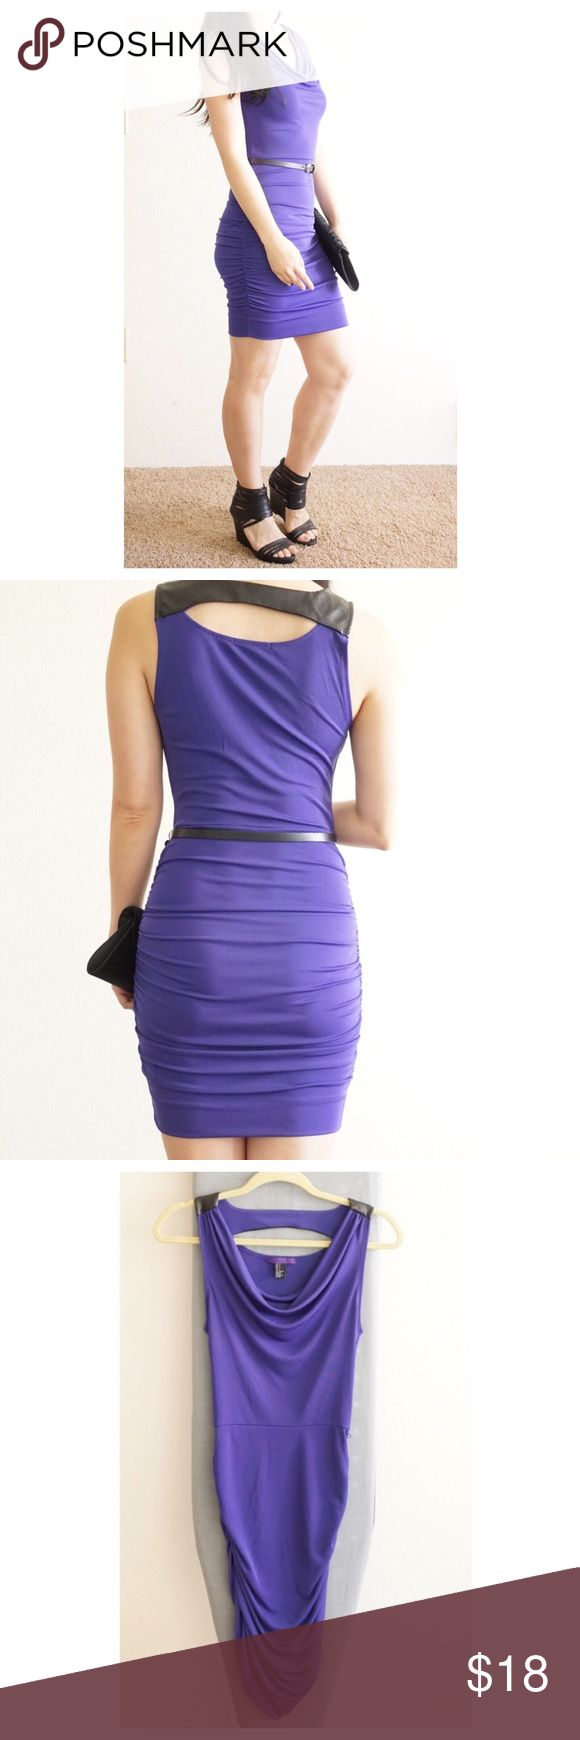 Purple body con dress Sexy purple dress that compliments your shape perfectly. Only worn once. Easy to maintain, doesn't wrinkle easily. US size S, true to size. I'm 5'4. Forever 21 Dresses Midi